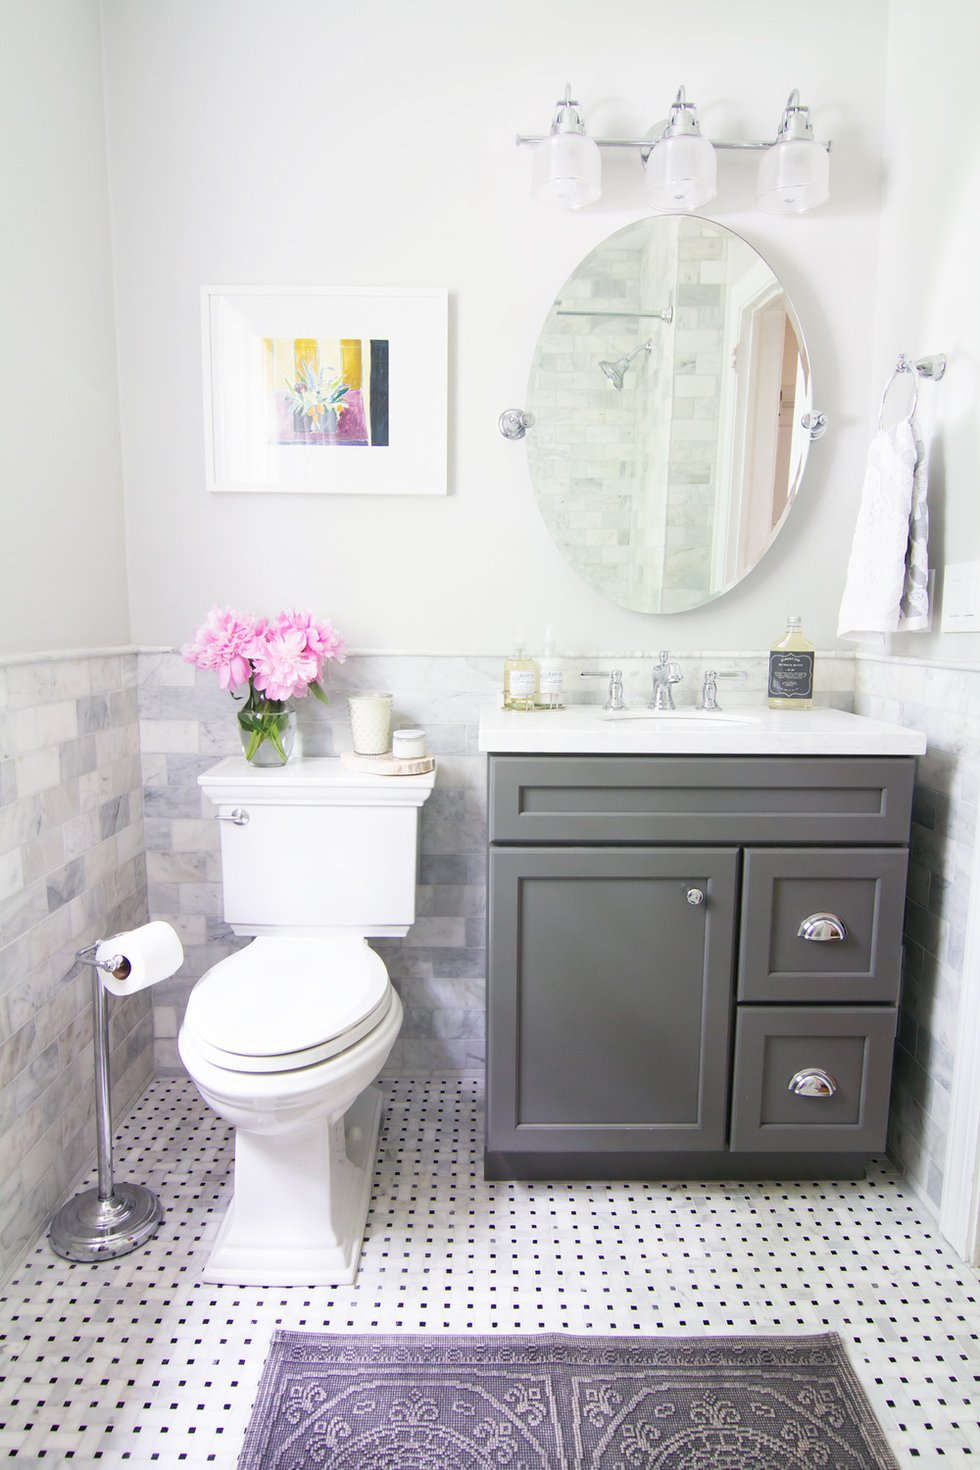 New small bathroom remodel ideas 30 of the best small and functional bathroom design ideas byrzzwe